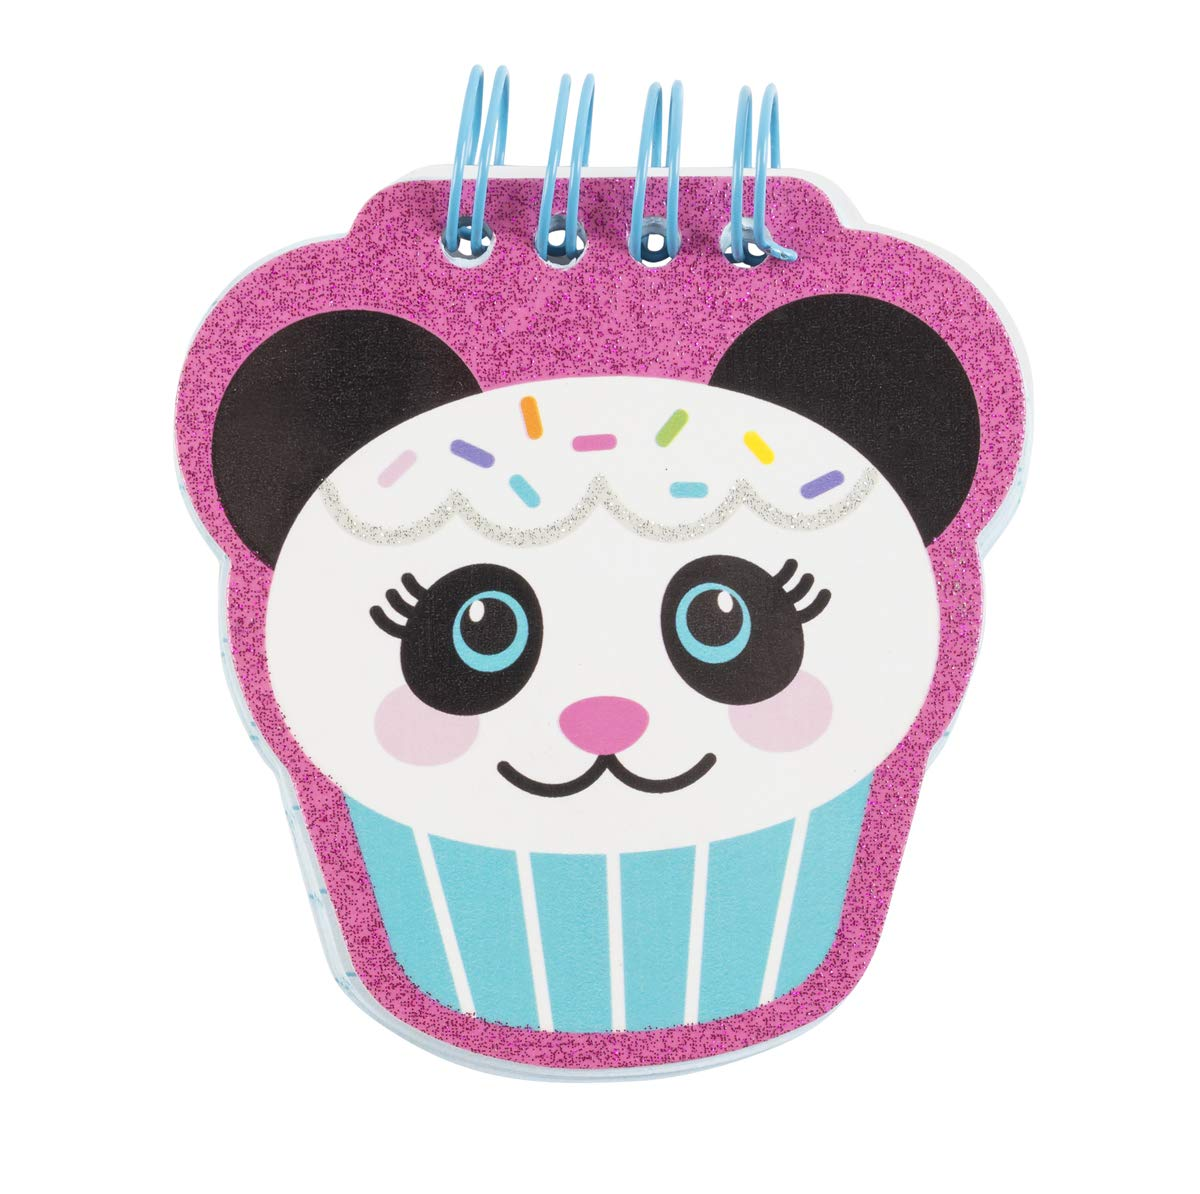 Girls Locking Writing Journal - Soft Plush Panda Design - 140 Pages with Bonus Mini-Me Notepad